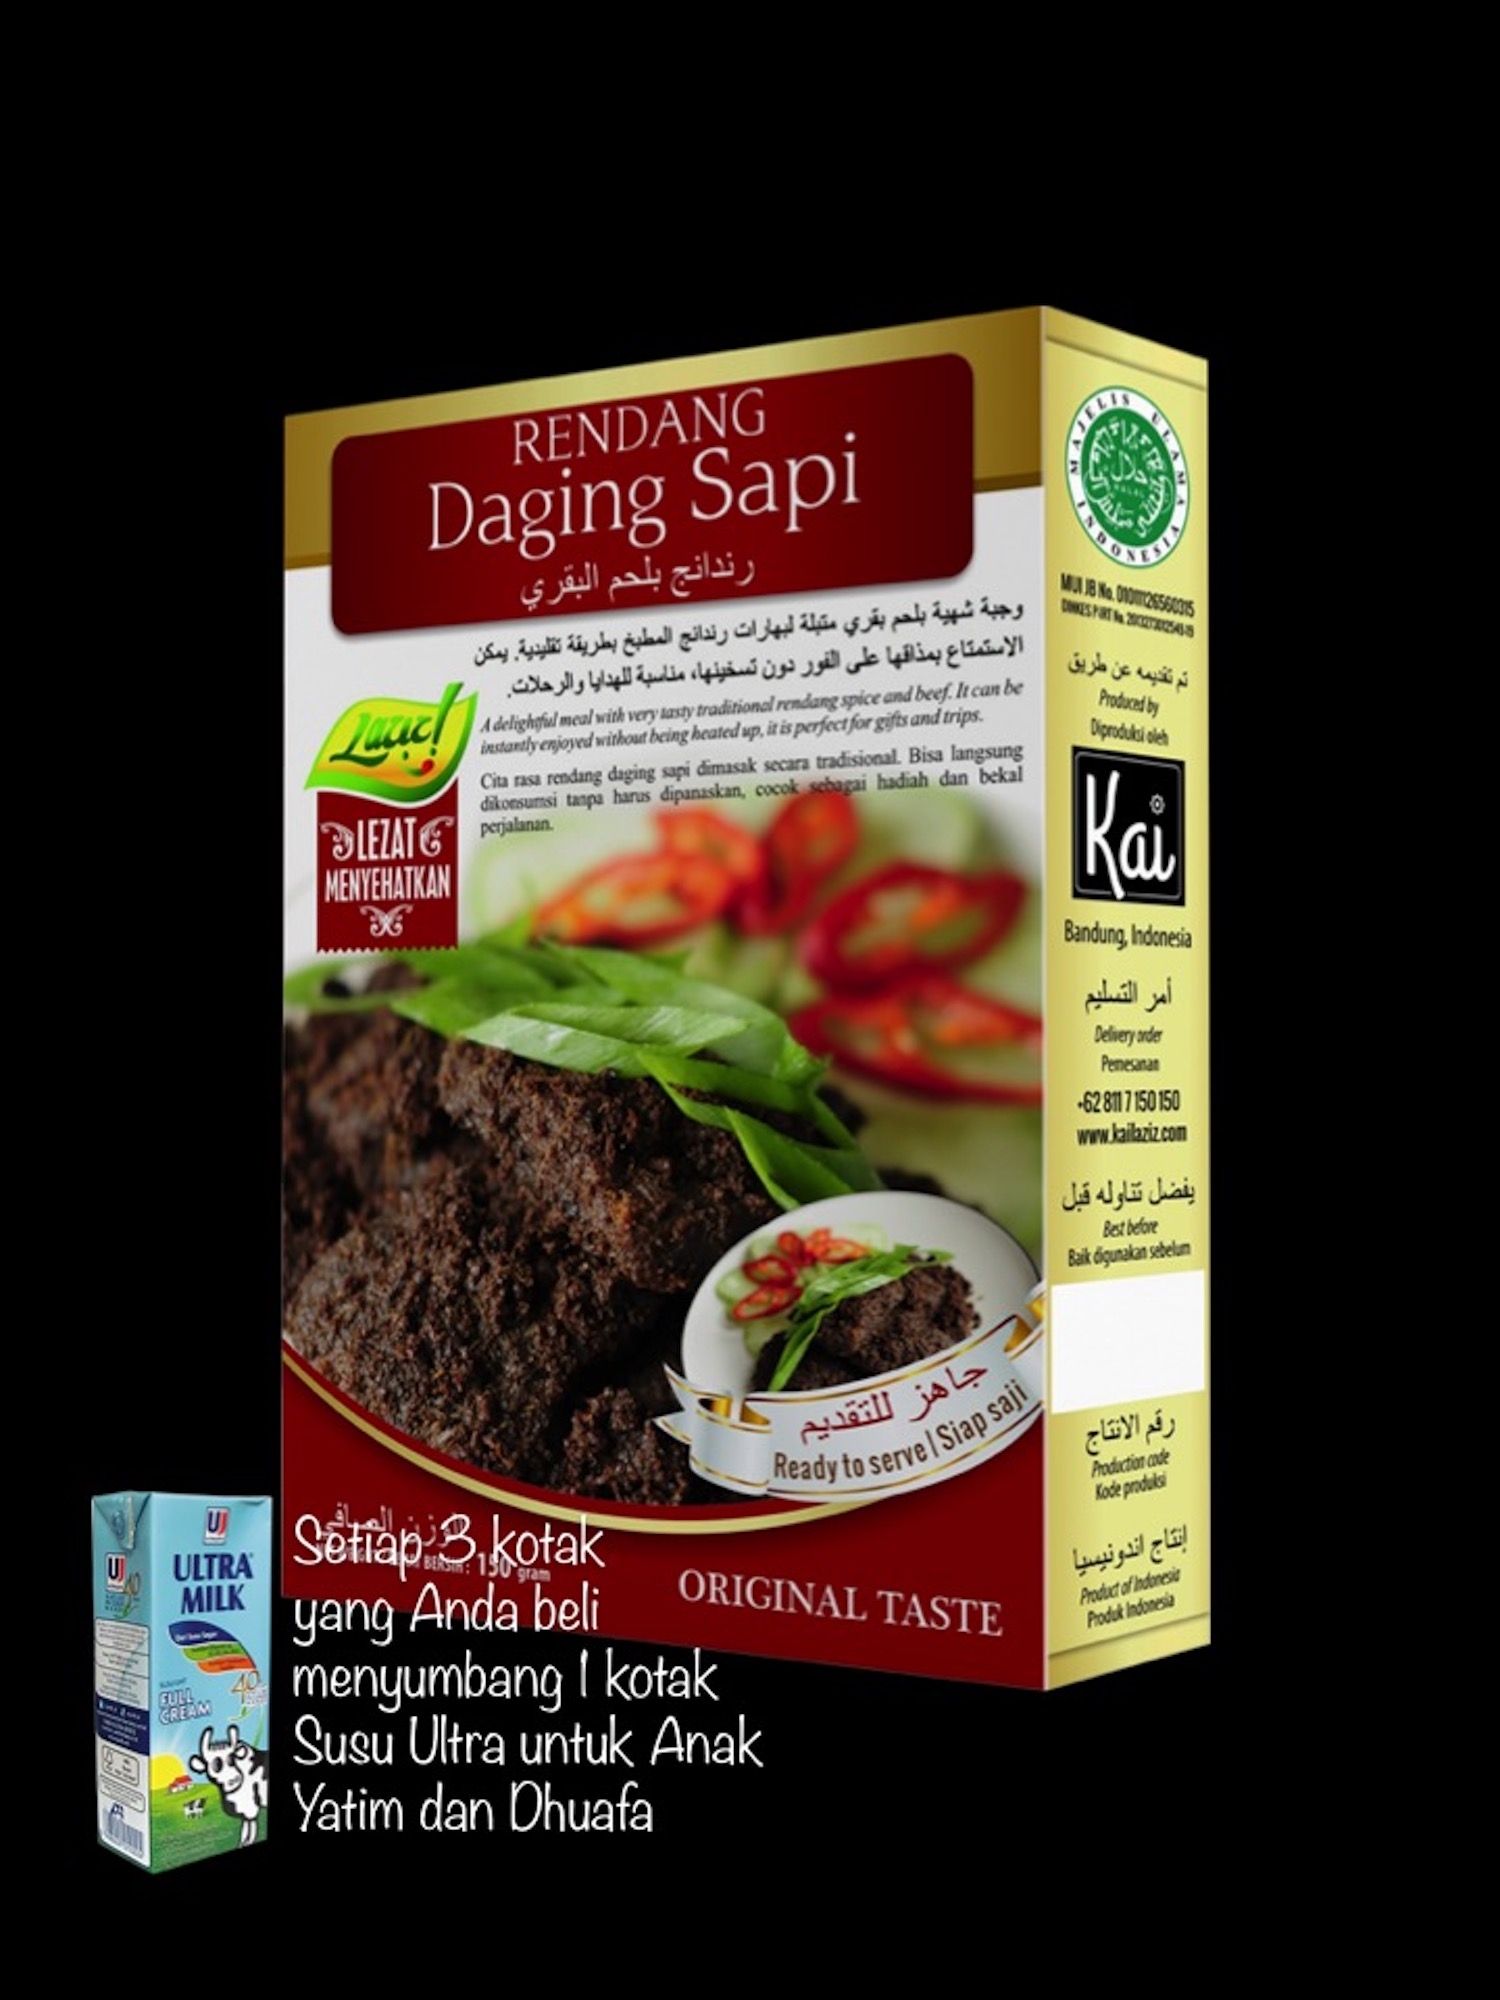 RENDANG DAGING SAPI KAI FOOD 150GR